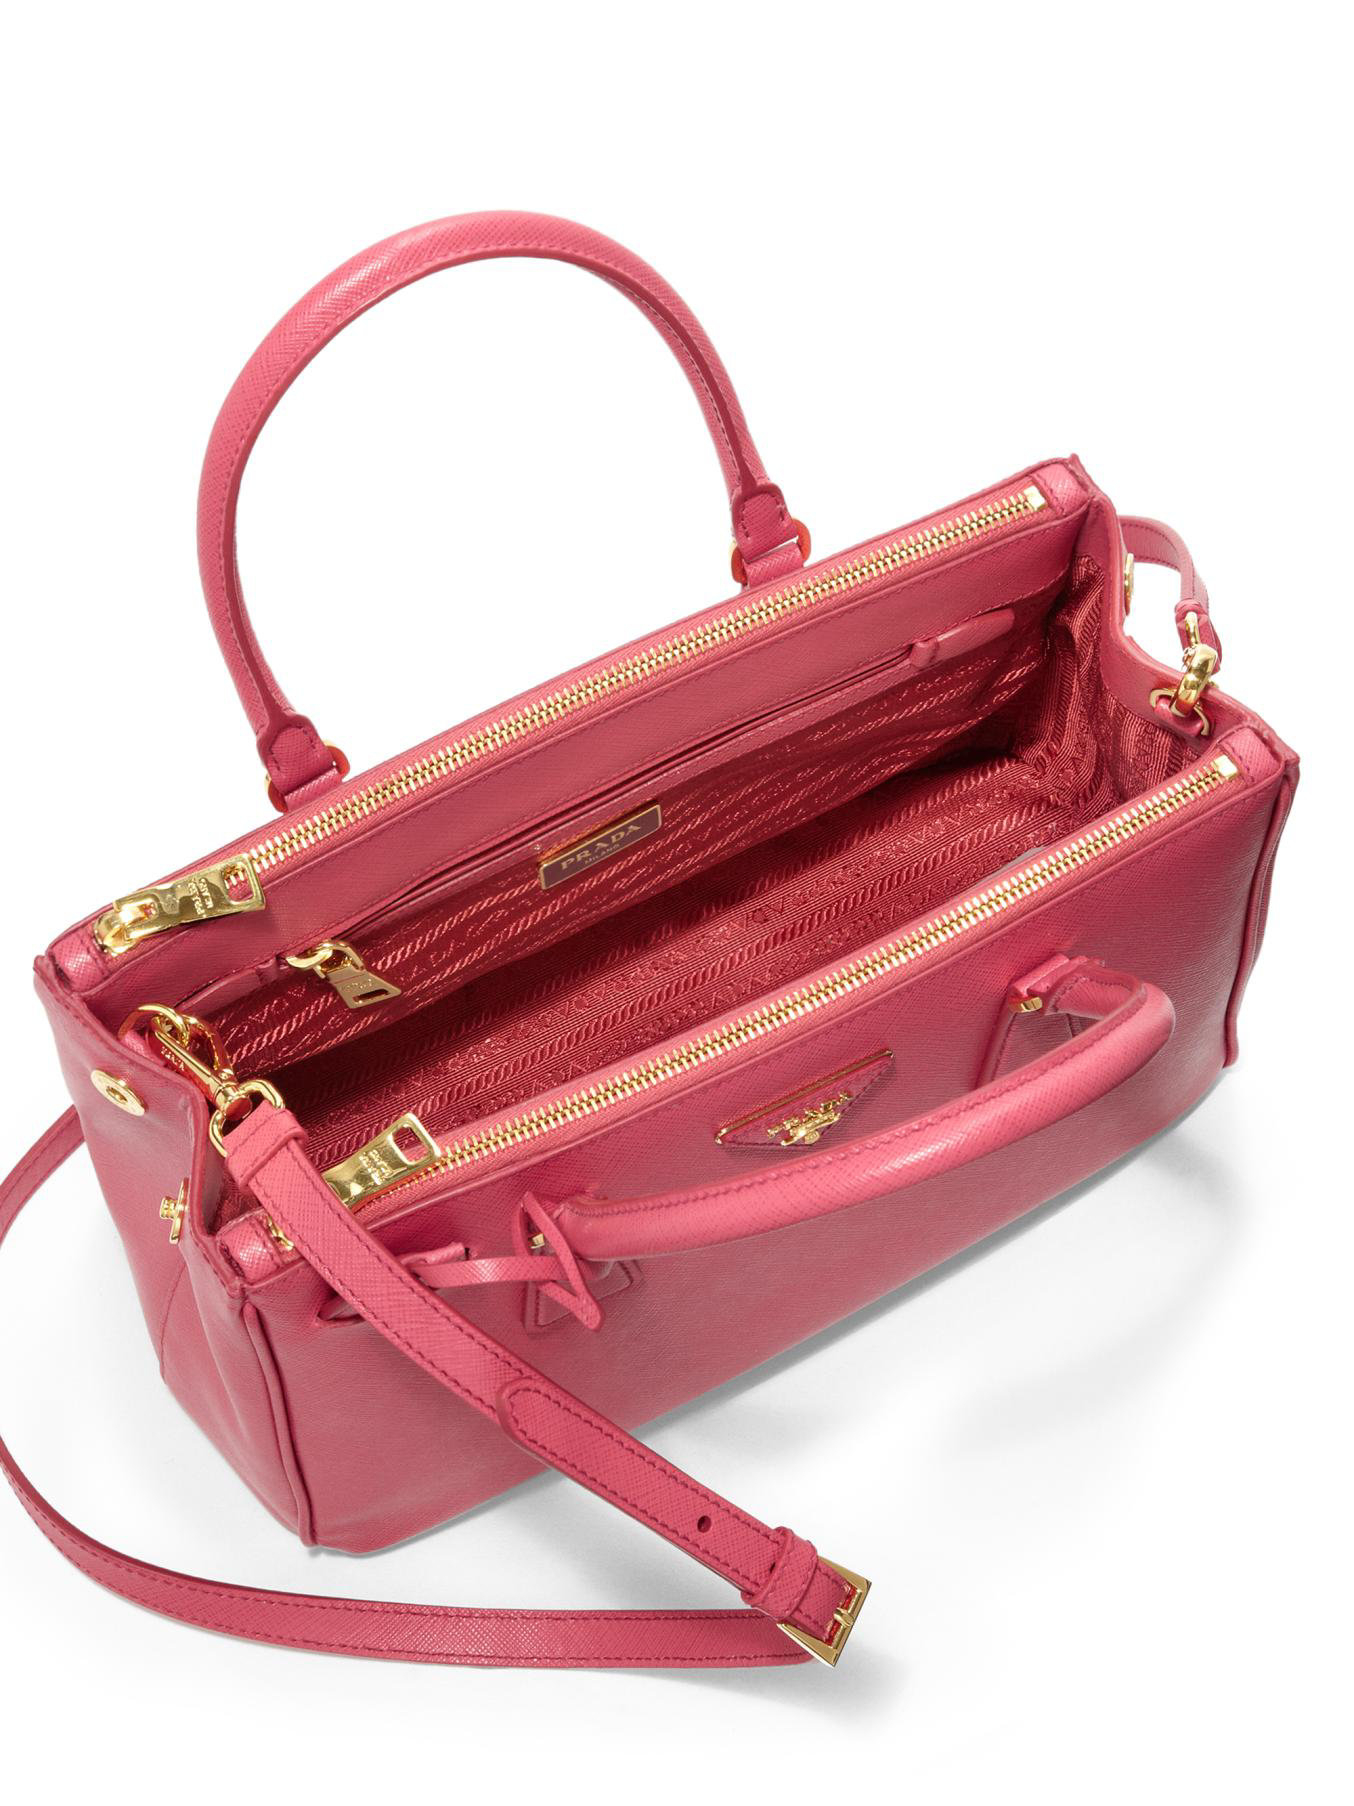 prada shoulder bag leather - Prada Saffiano Lux Small Double-zip Tote in Pink (PEONIA) | Lyst